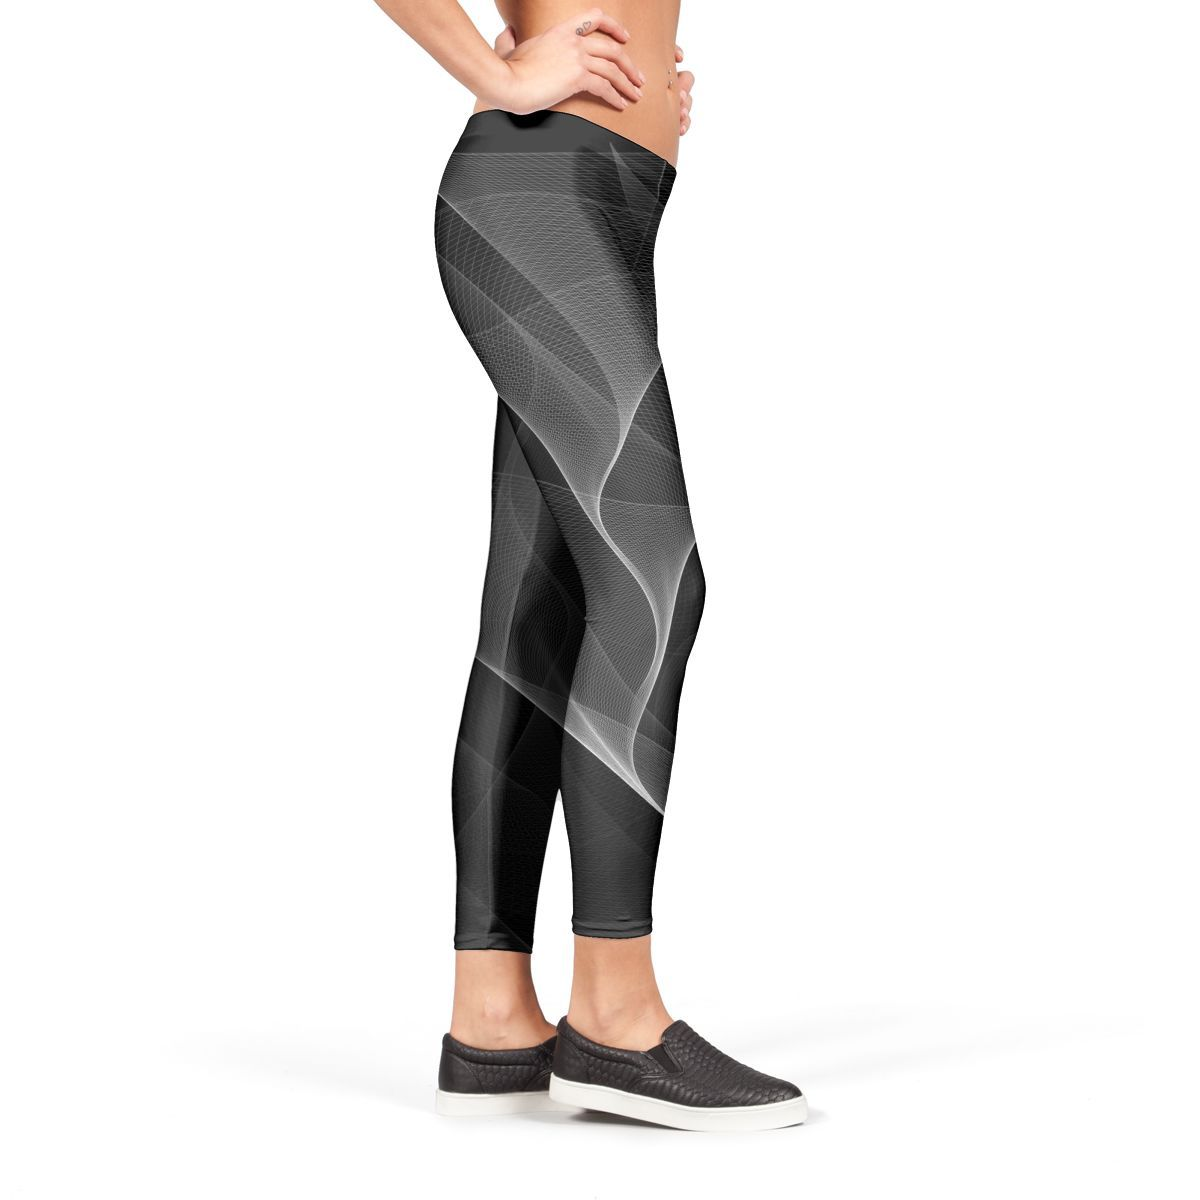 4bac0f9fe28a9 Buy 'Black and White Flux' Leggings by Dominique Vari from €37.00 | miPic .  || Elegant black and white abstract and fluid shapes looking in motion for  a ...